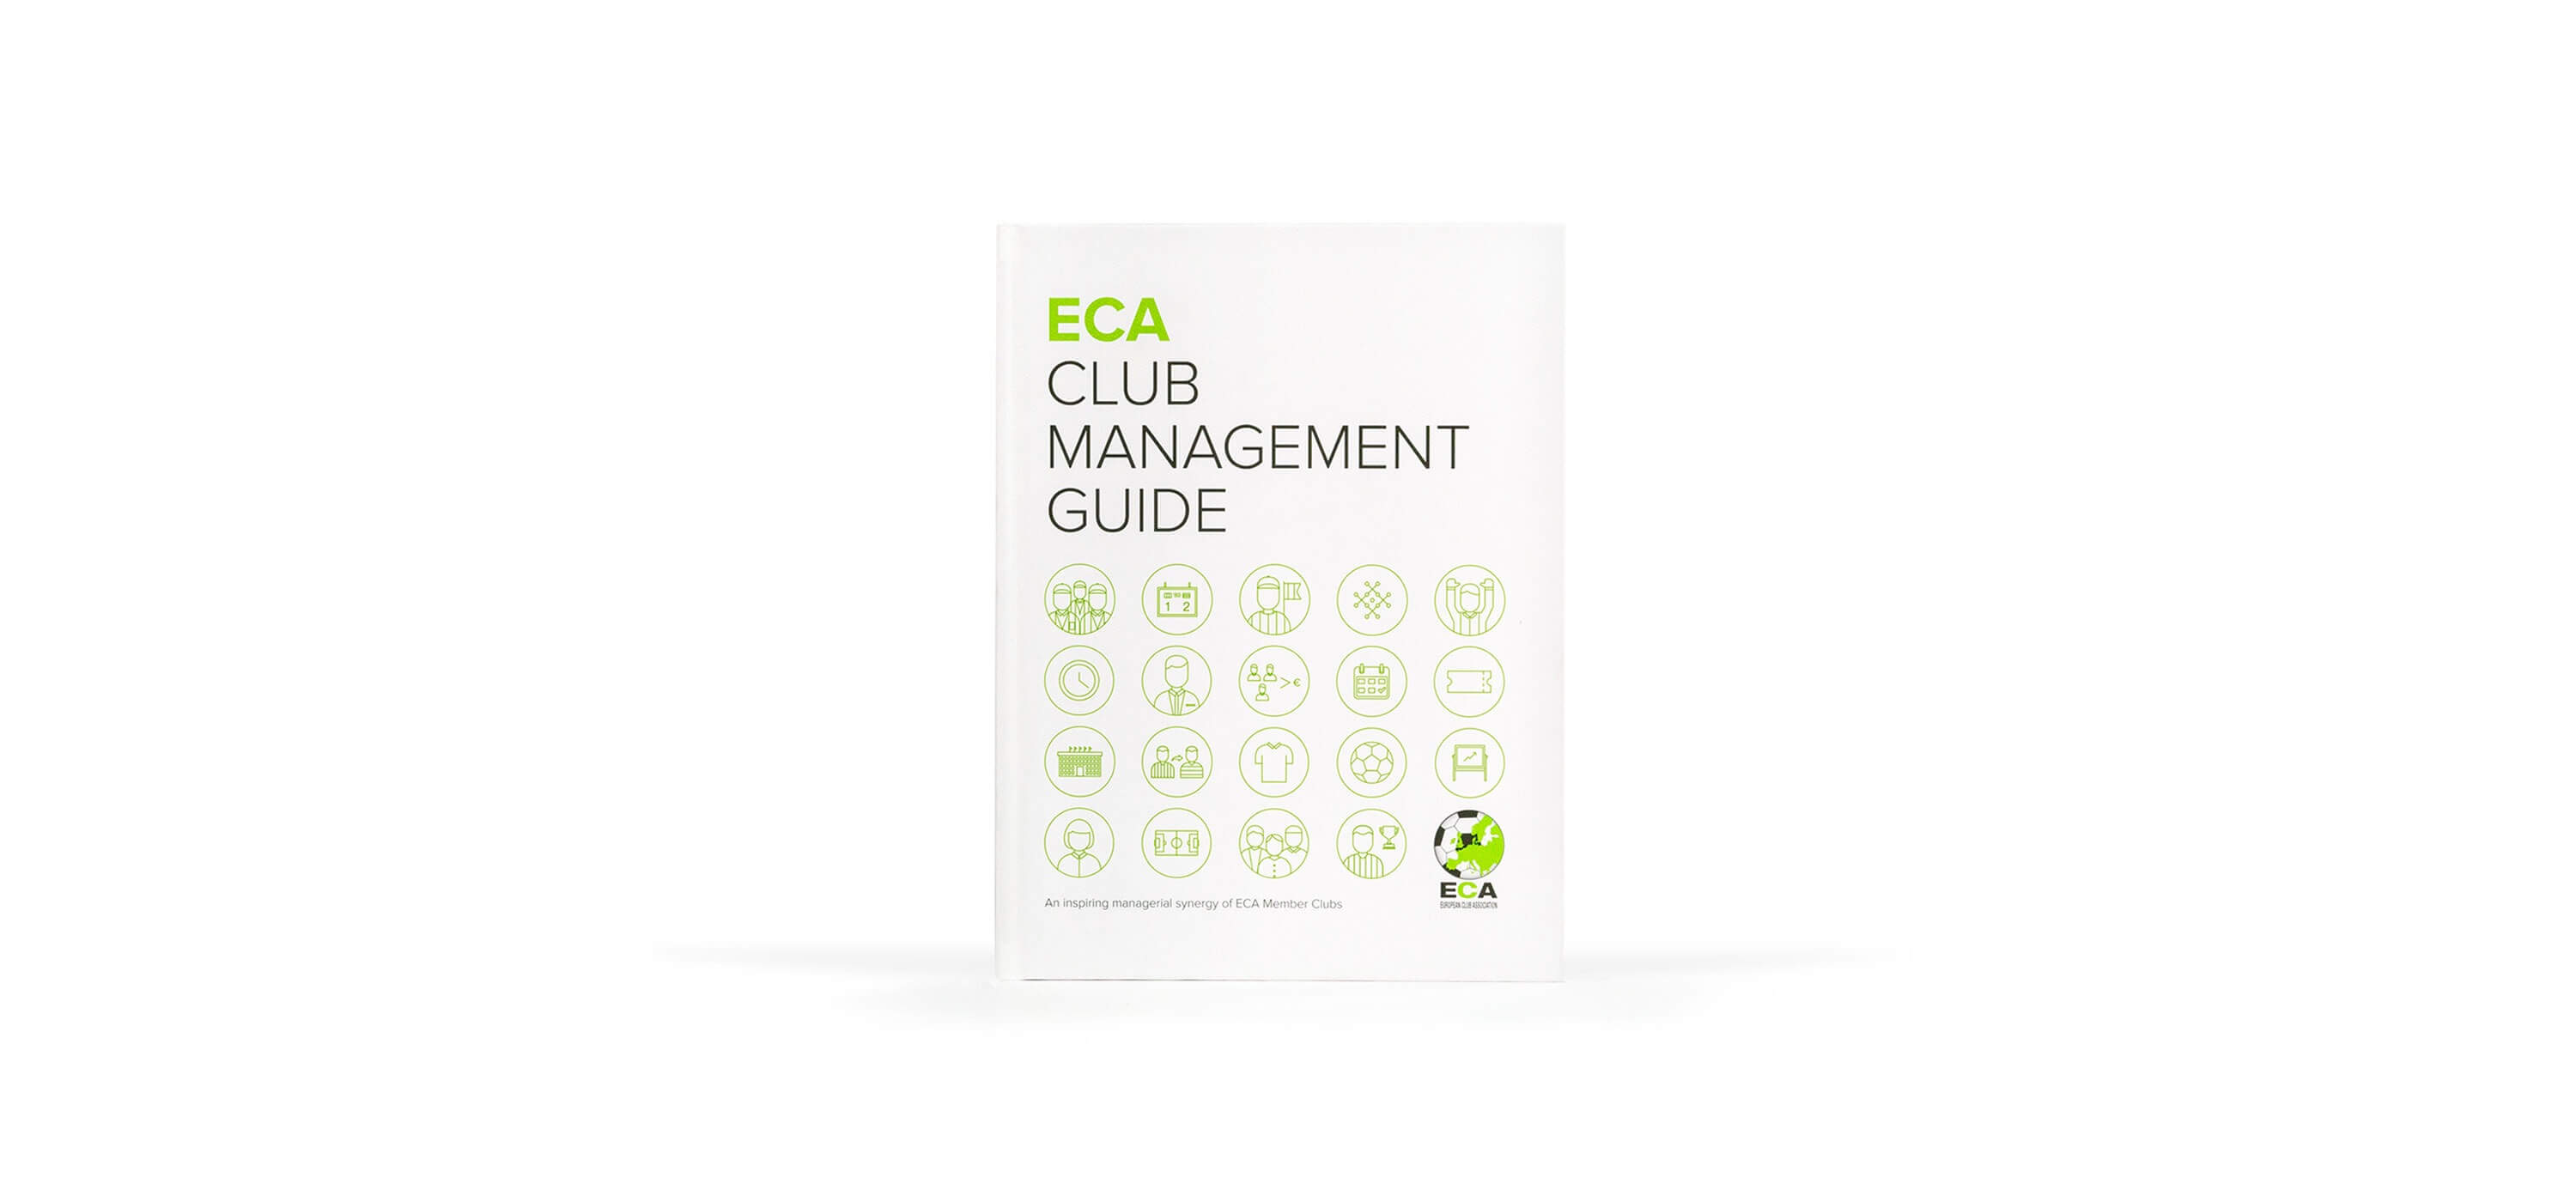 Managing a football club -European Club Association